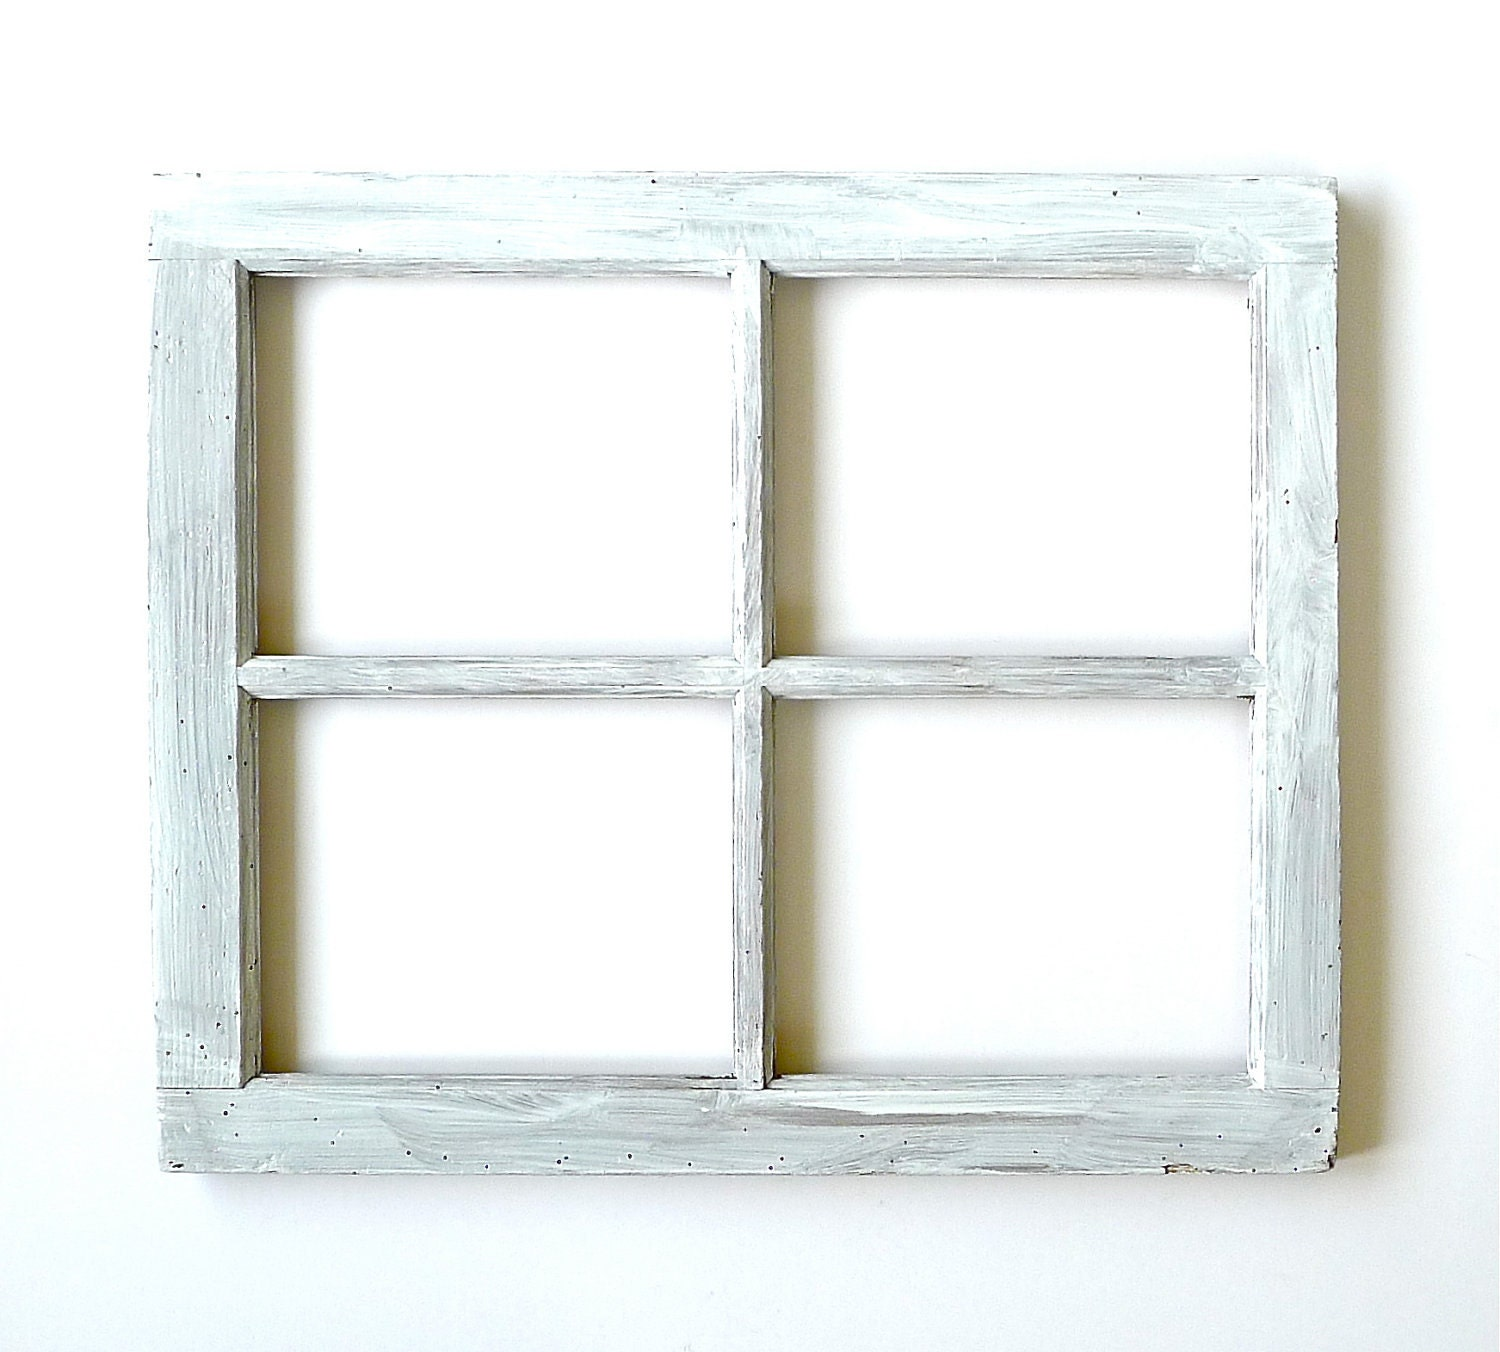 Four Pane Wood Window Frame